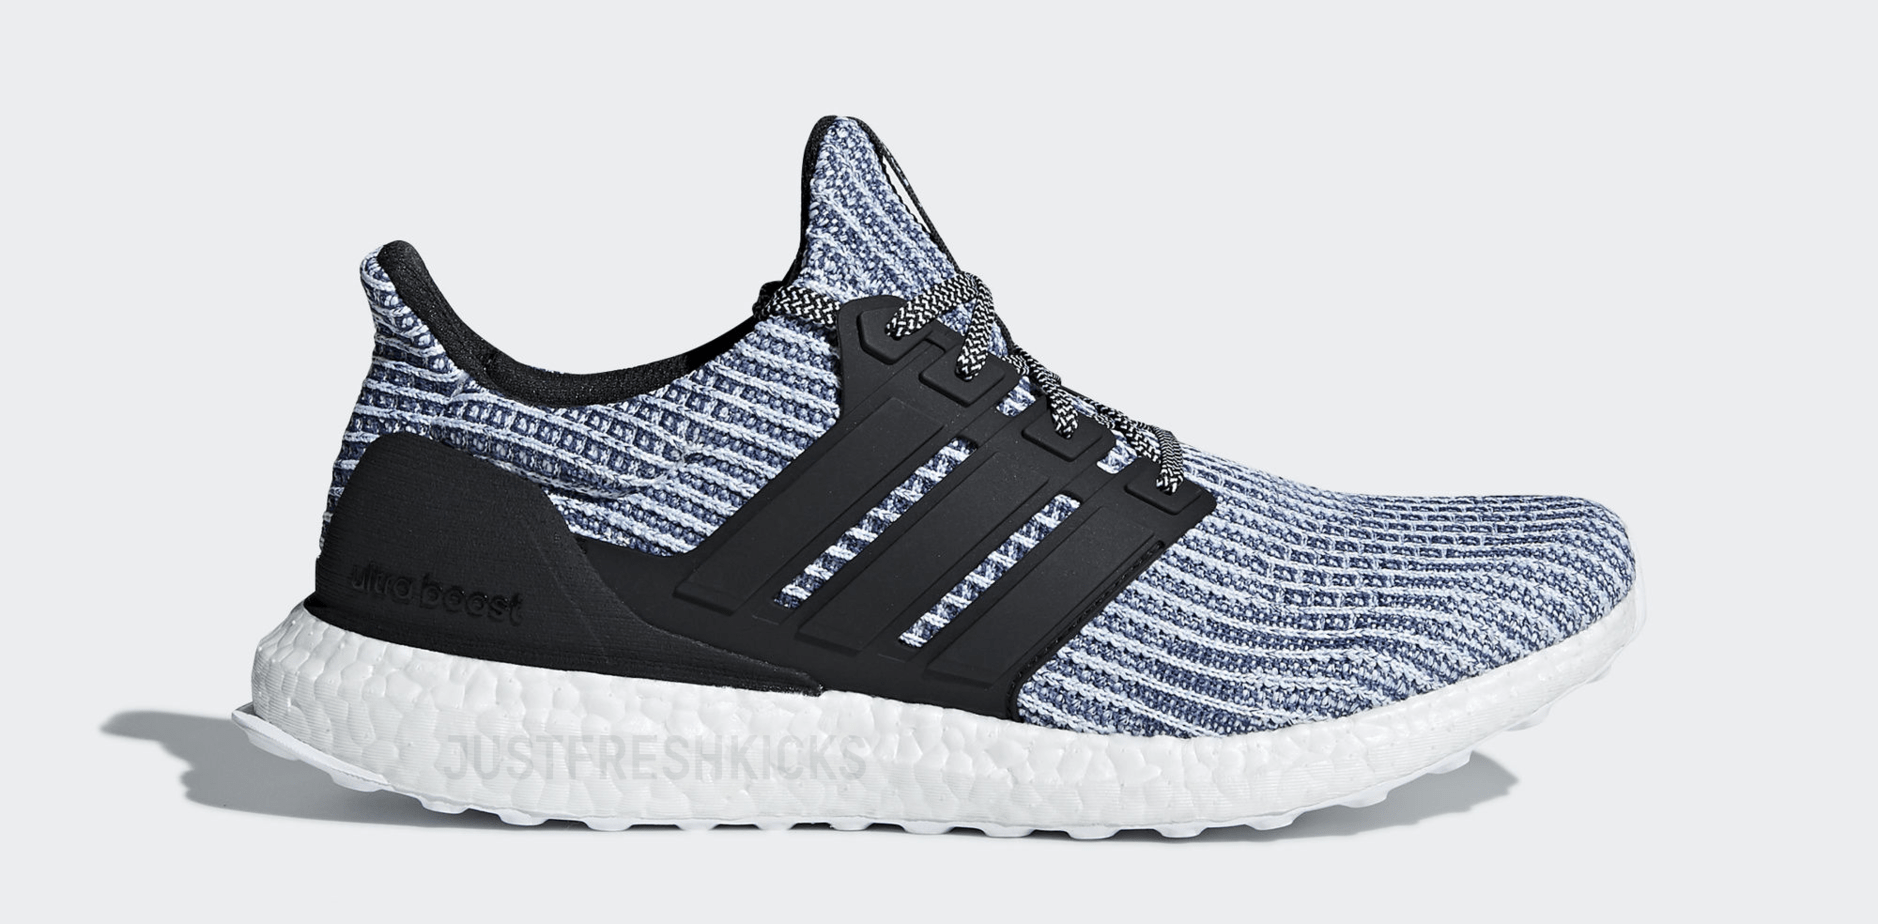 new products 8bf23 053d7 If the latest release wasn t to your liking, we have a special treat for  you. Check out the next Parley x adidas Ultra Boost ...